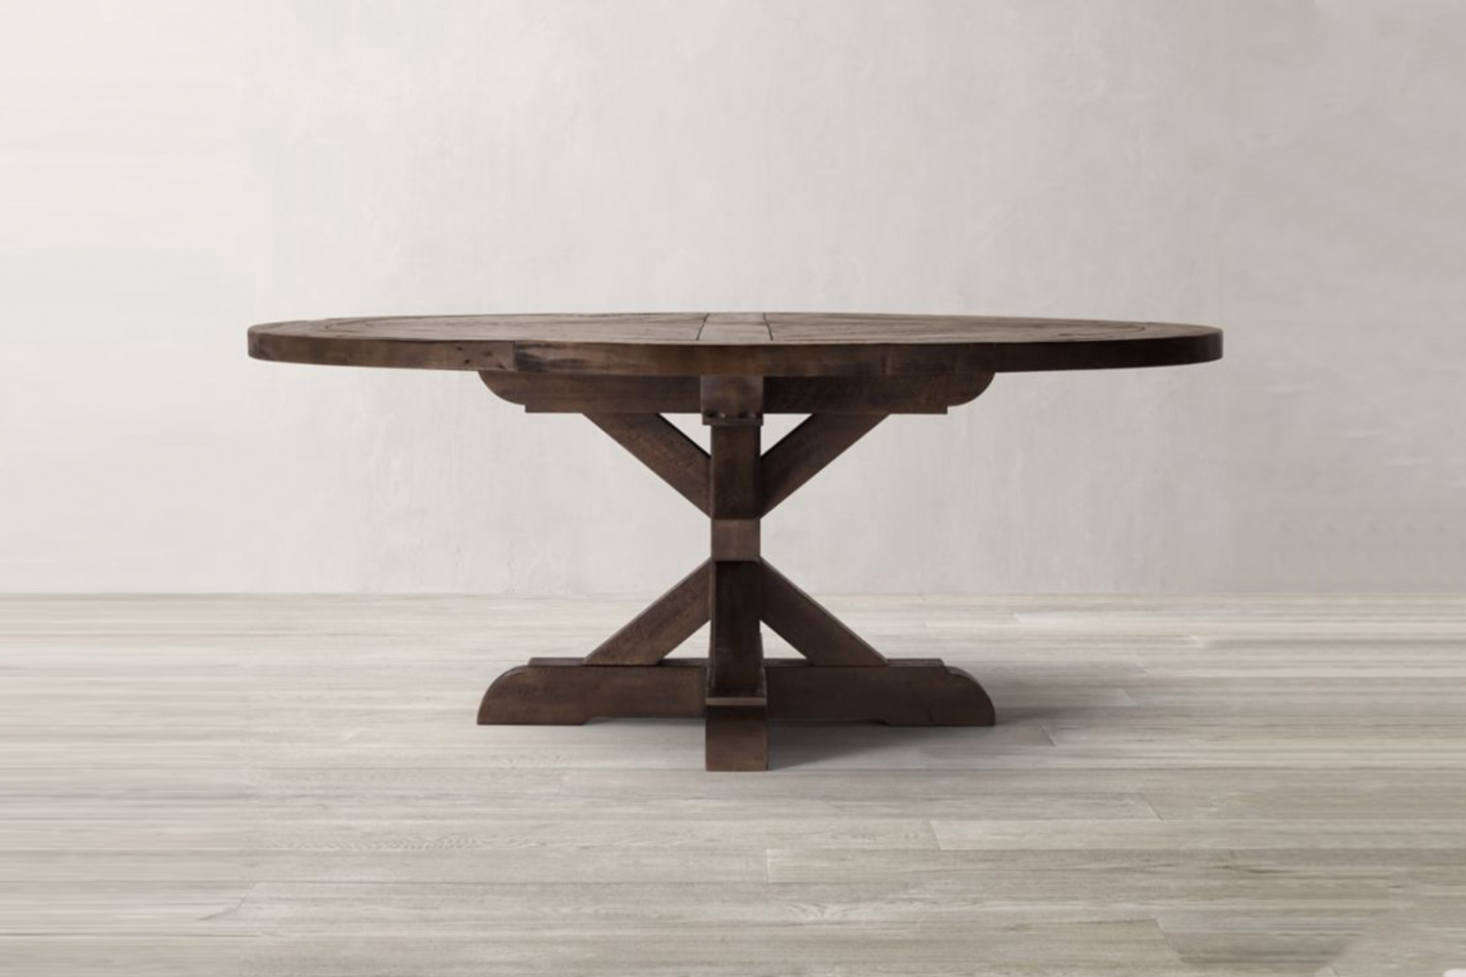 Another off-the-shelf option is the Restoration Hardware Salvaged Wood X-Base Round Dining Table which starts at $